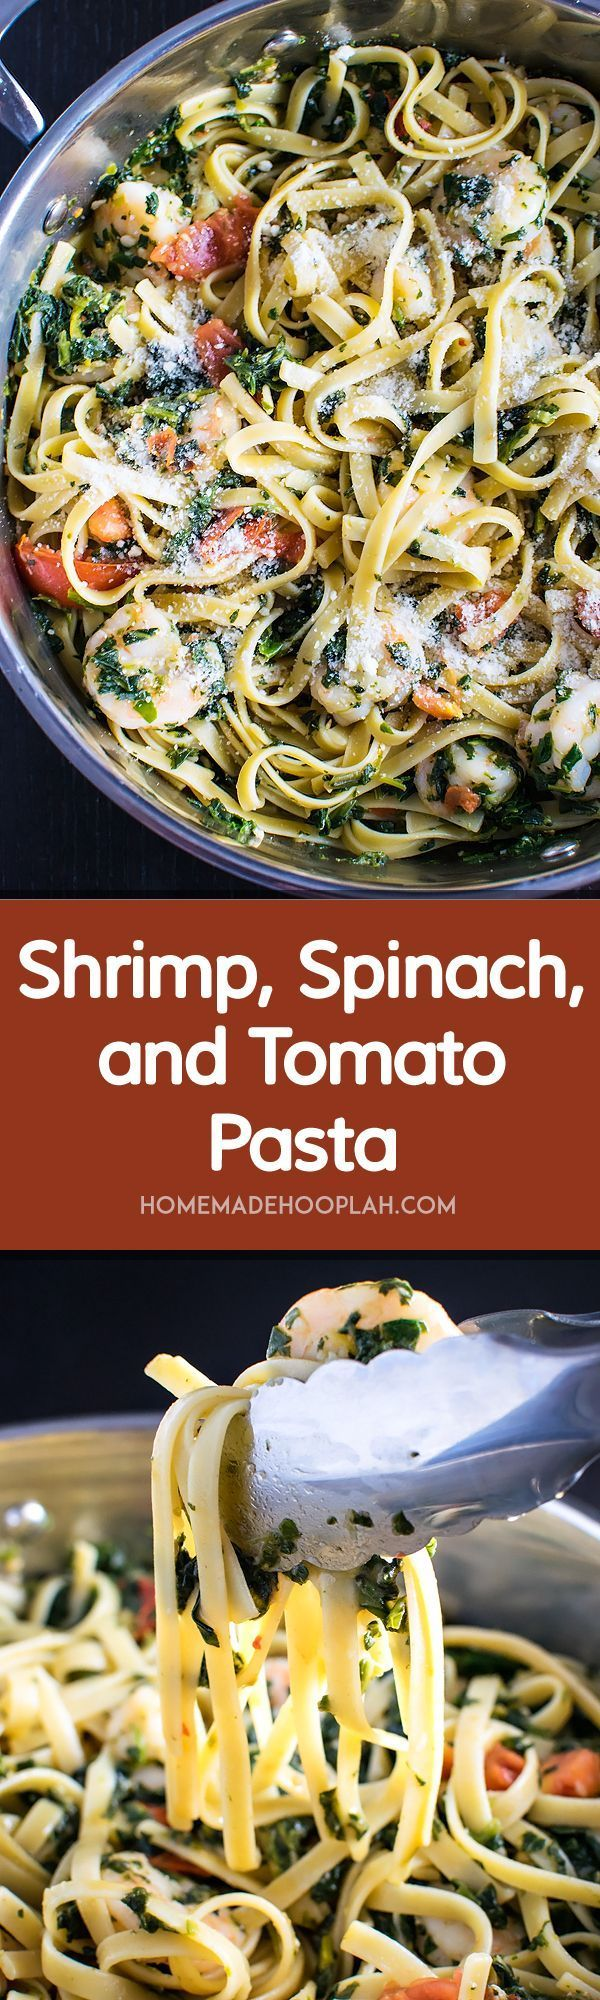 Shrimp Spinach and Tomato Pasta ! Shrimp, spinach, and tomato tangled up with al dente fettuccine in a garlic butter sauce. A quick week night dinner that looks gourmet! | HomemadeHooplah.com